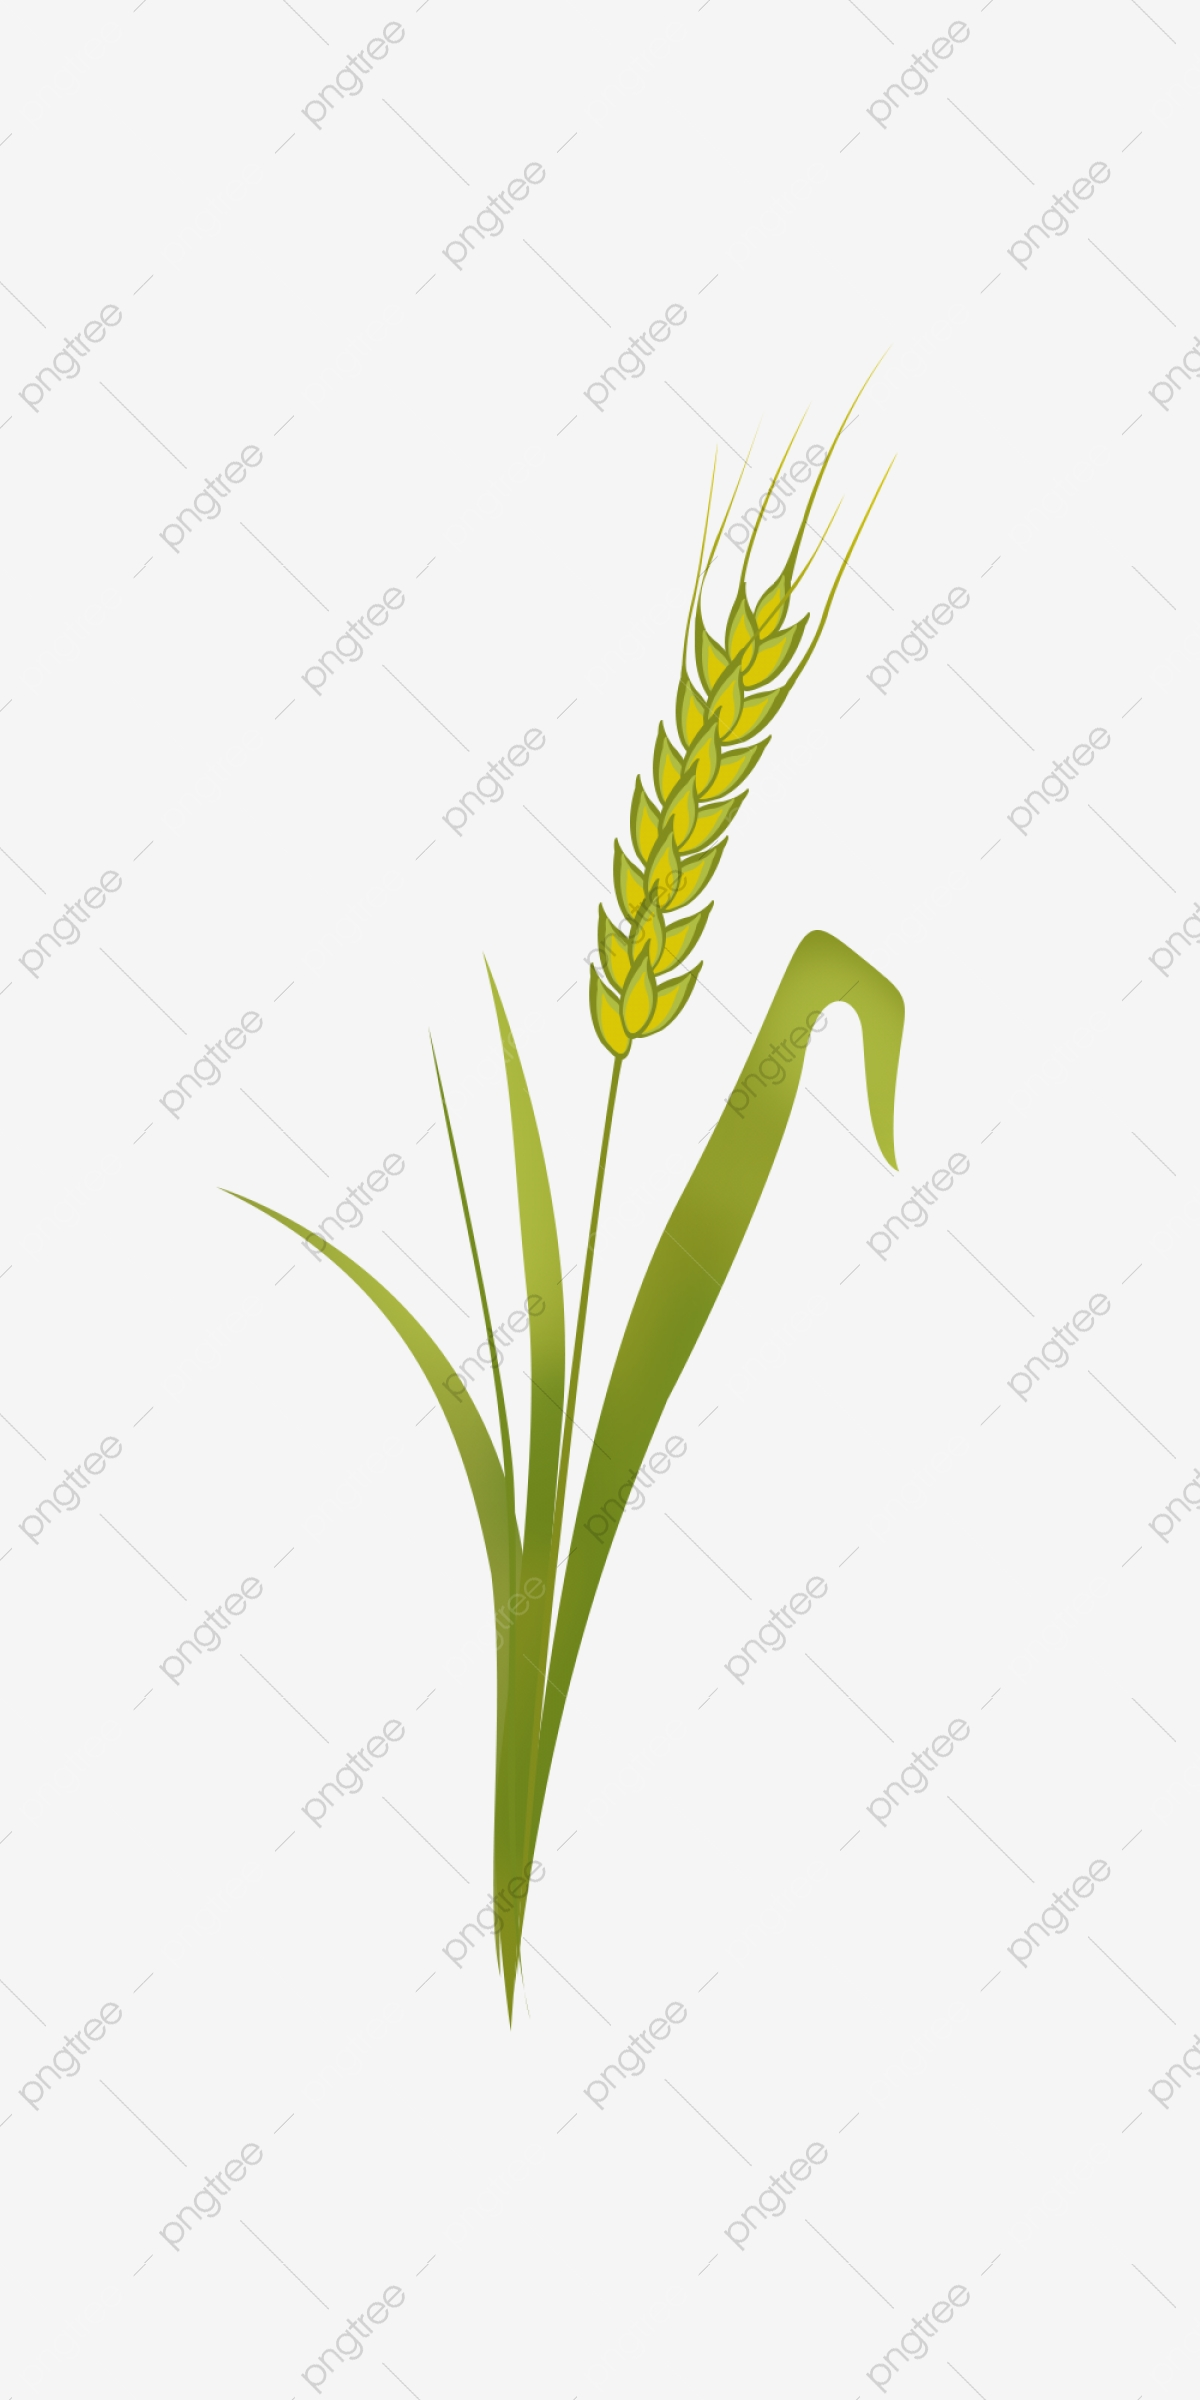 Wheat clipart green. Seedling ears cereals plant